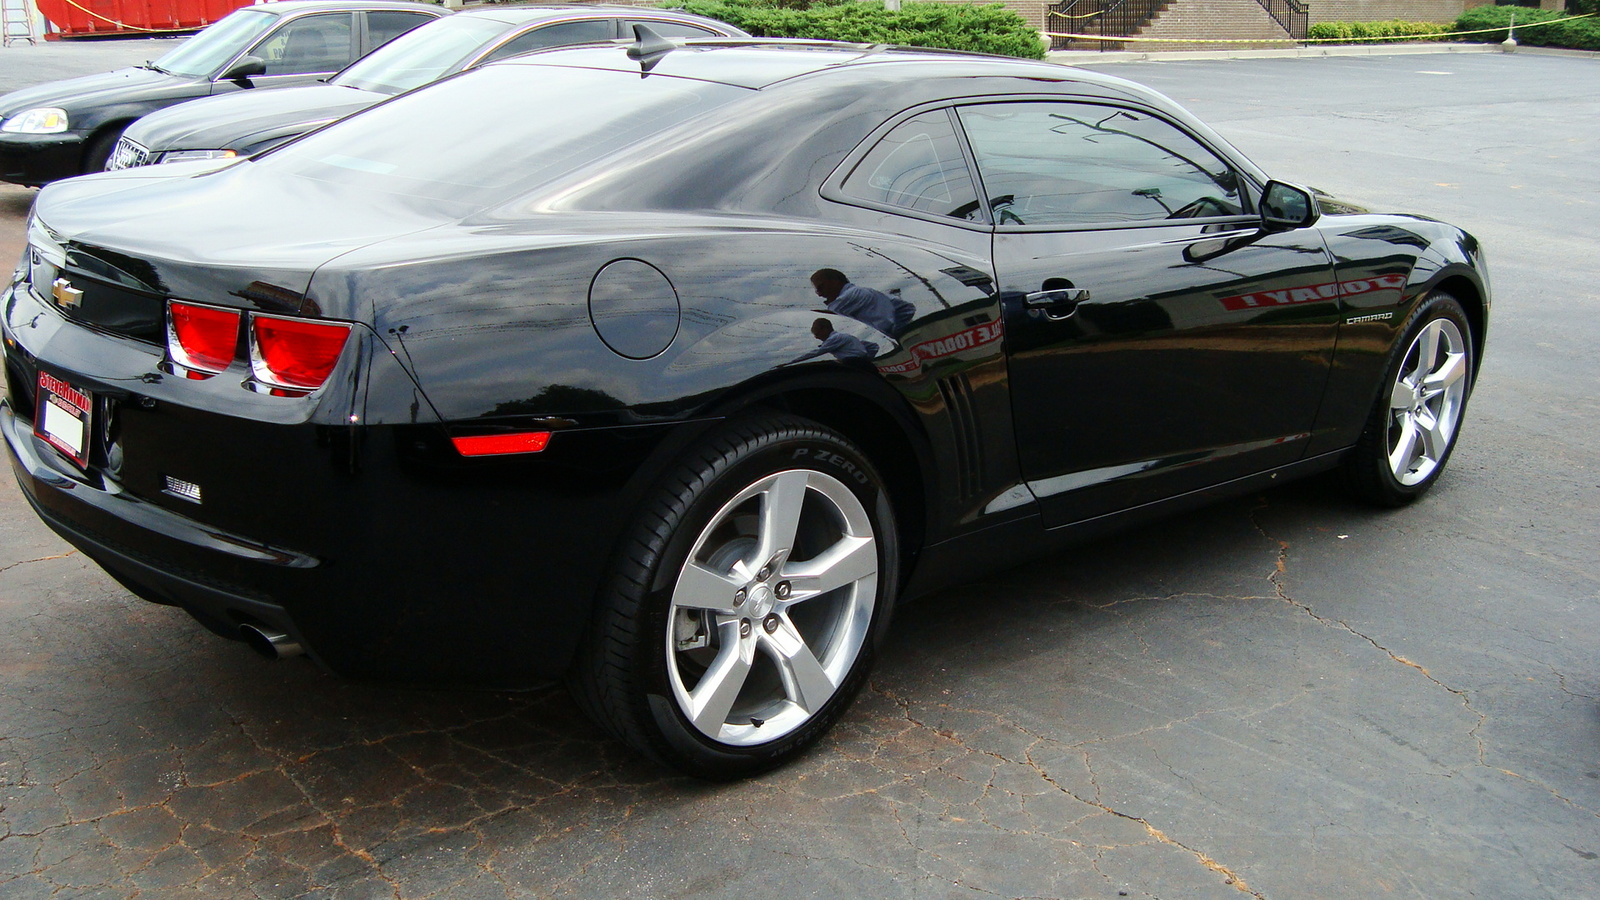 Chevrolet Camaro 2001 photo - 5